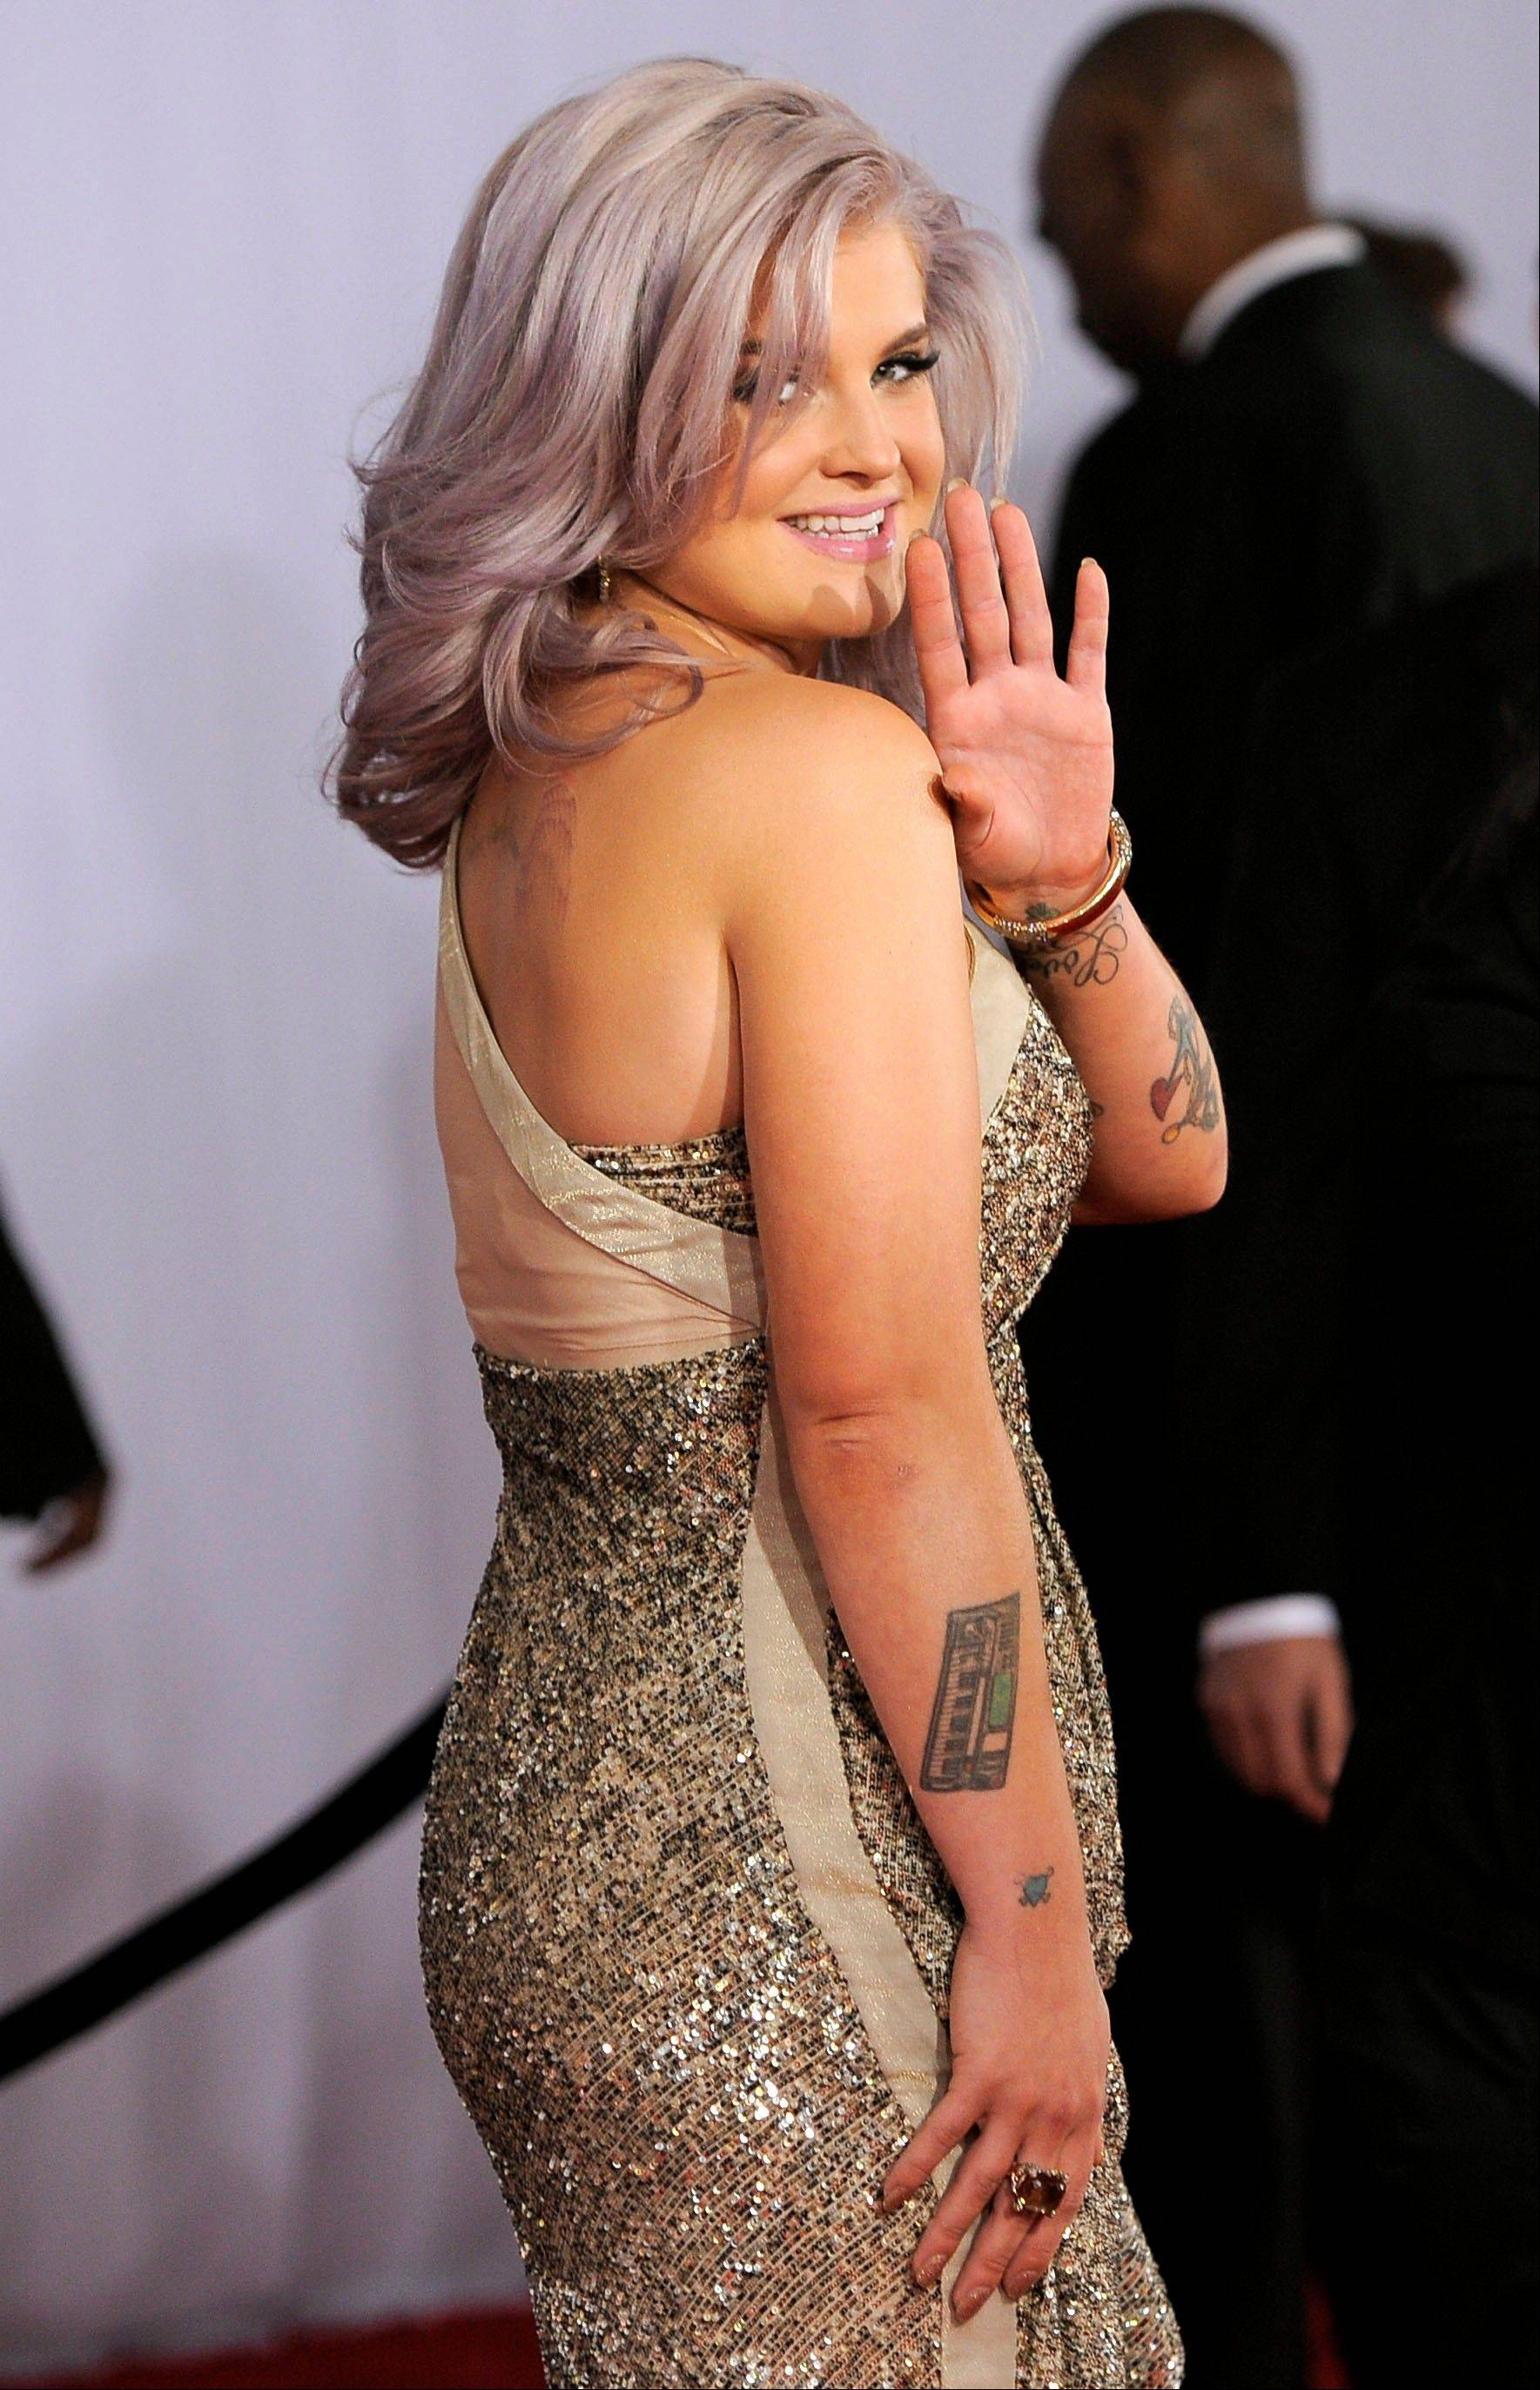 Kelly Osbourne arrives Sunday at the 54th annual Grammy Awards in Los Angeles.